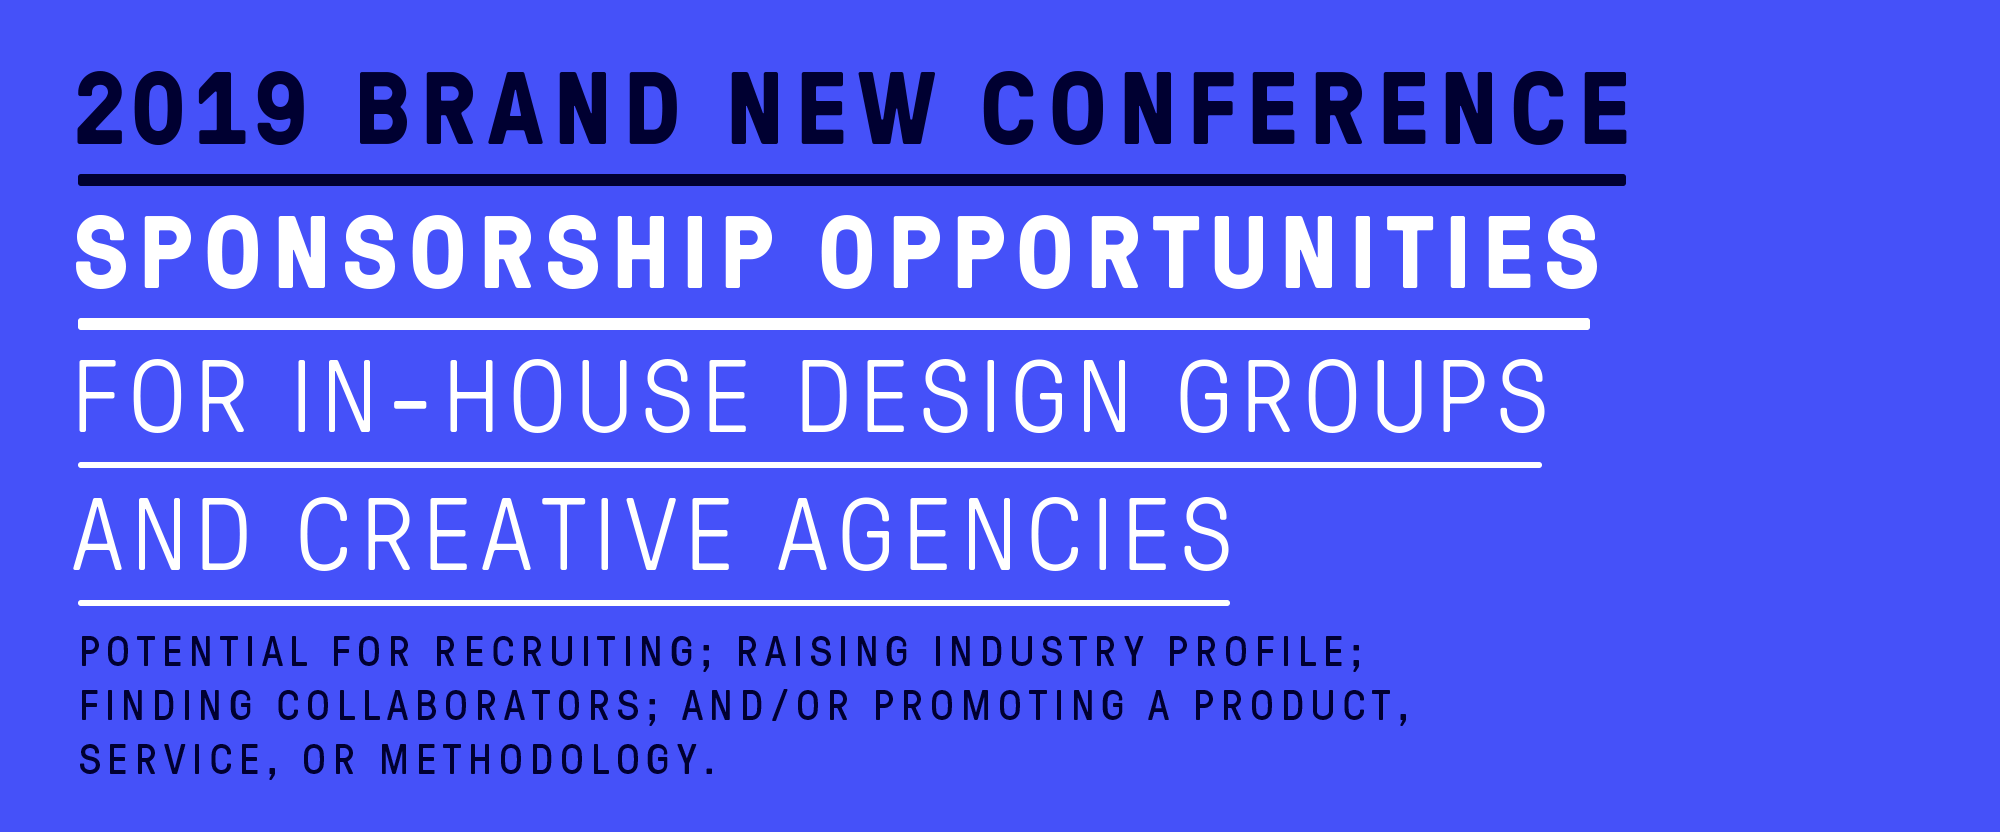 2019 Brand New Conference: Sponsorship Opportunities